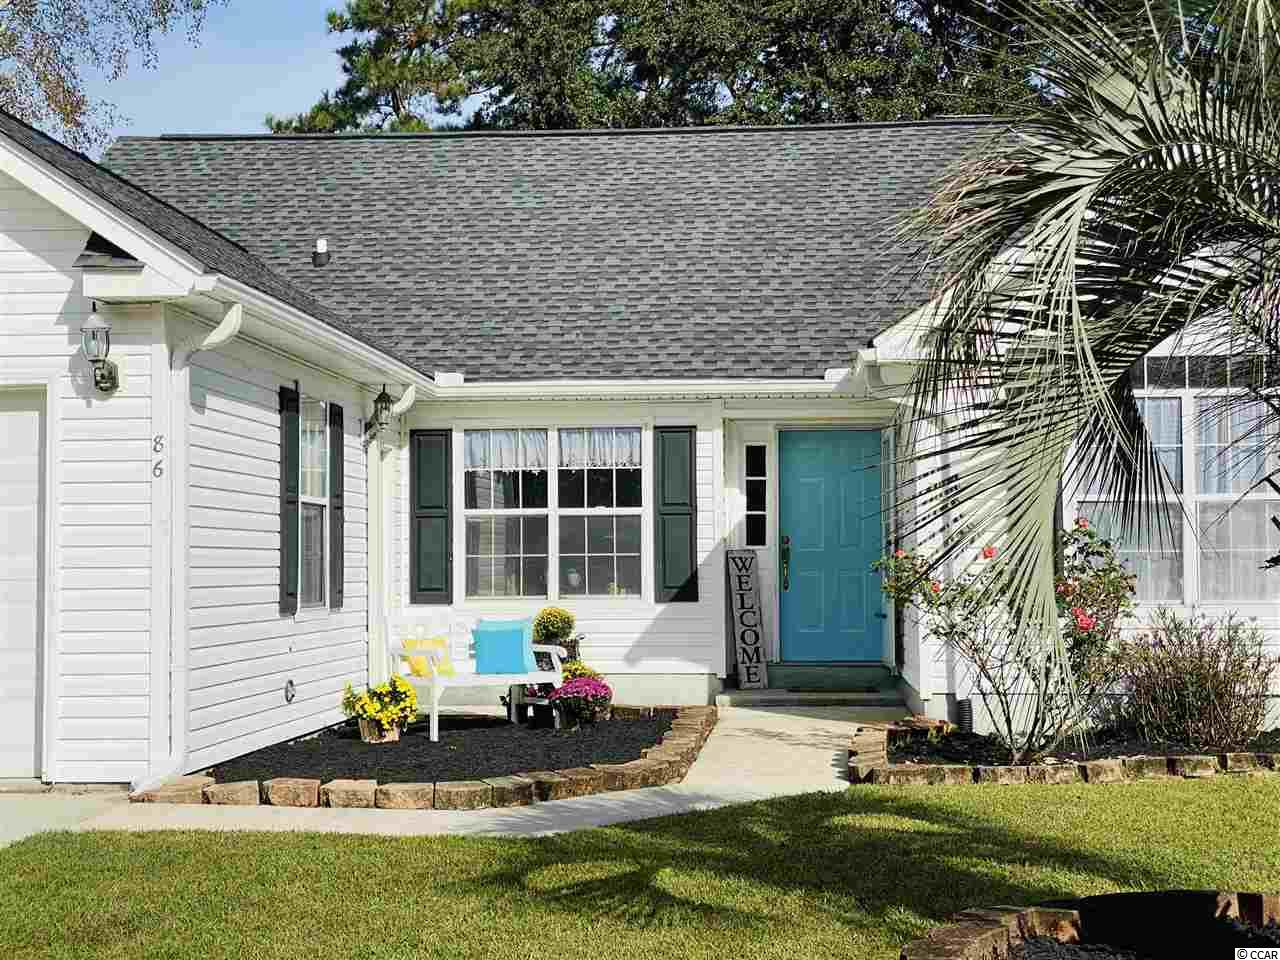 Cute cottage in Wedgefield Plantation, Georgetown, South Carolina!  Split bedroom floor plan with two bedrooms and two baths.  Very bright and open space with room for entertaining inside and out. Vaulted ceilings in great room and dining room, kitchen with breakfast bar and nook - this whole living area looks out onto the HUGE screened porch and separate sun room and then to the  back yard green space of Wedgefield Golf Course #18. Owner's suite with vaulted ceilings and bath with walk-in shower.  Second bedroom and bath are located towards the front of the home.  One car garage and smaller, low maintenance lot.  Wedgefield Plantation is an active and beautiful community with it's own public golf course and a boat landing into the Black River.  Enjoy wonderful dining onsite at The Manor House, an easy golf cart ride away.  Separate memberships available if you so desire - pool, social and golf. Close to historic Georgetown waterfront Harbor Walk, shopping, wonderful restaurants, fresh seafood vendors, and access to five rivers that surround the area with an easy drive to Pawleys Island, the closest public beach access.  *Buyer responsible for verifying square footage.